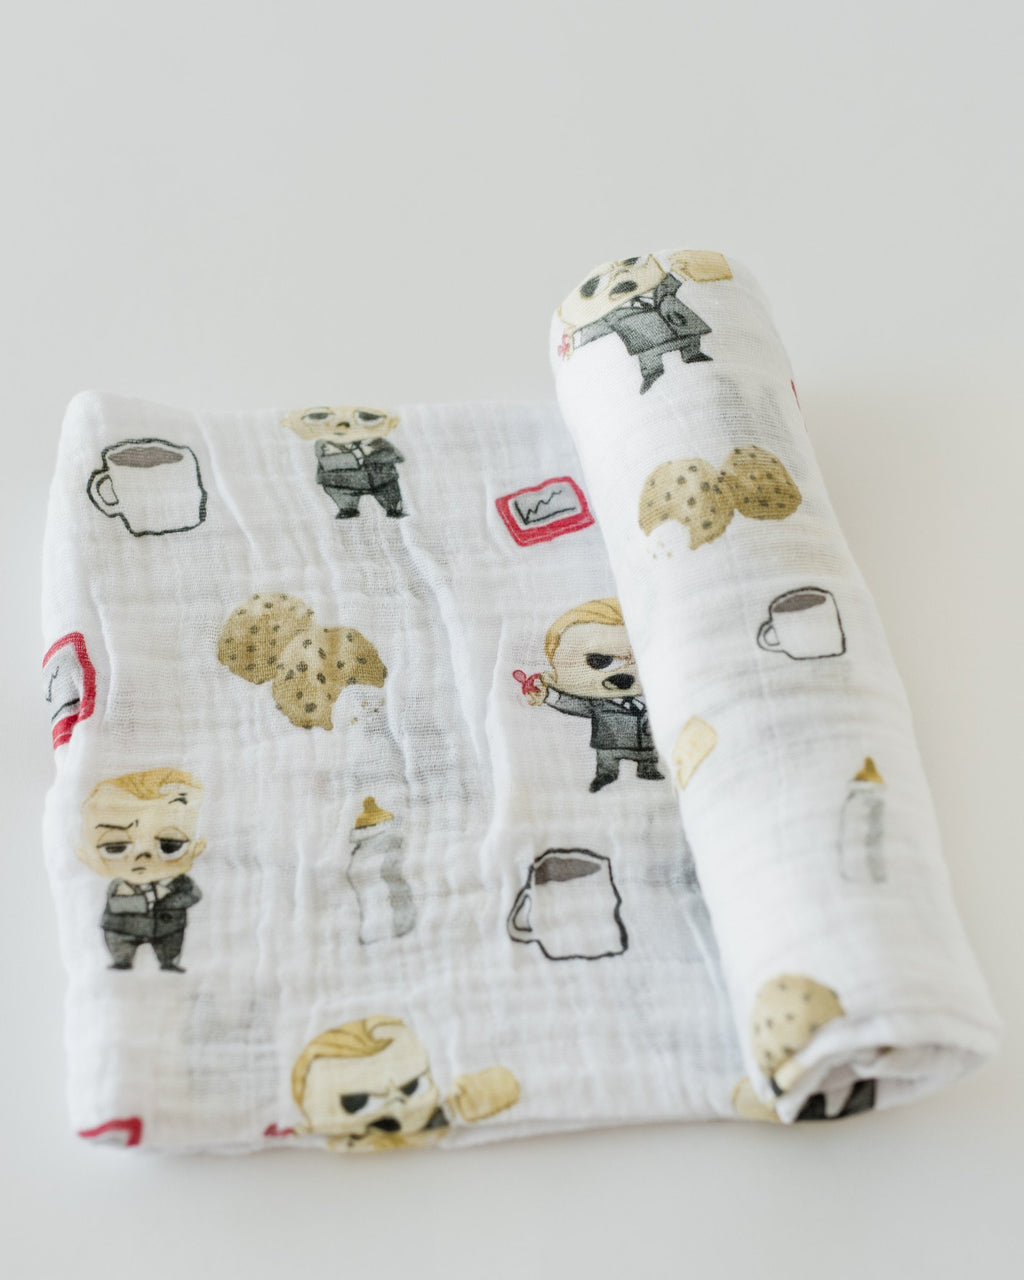 Little Unicorn LU + The Boss Baby Cotton Swaddle - Cookies are for Closers